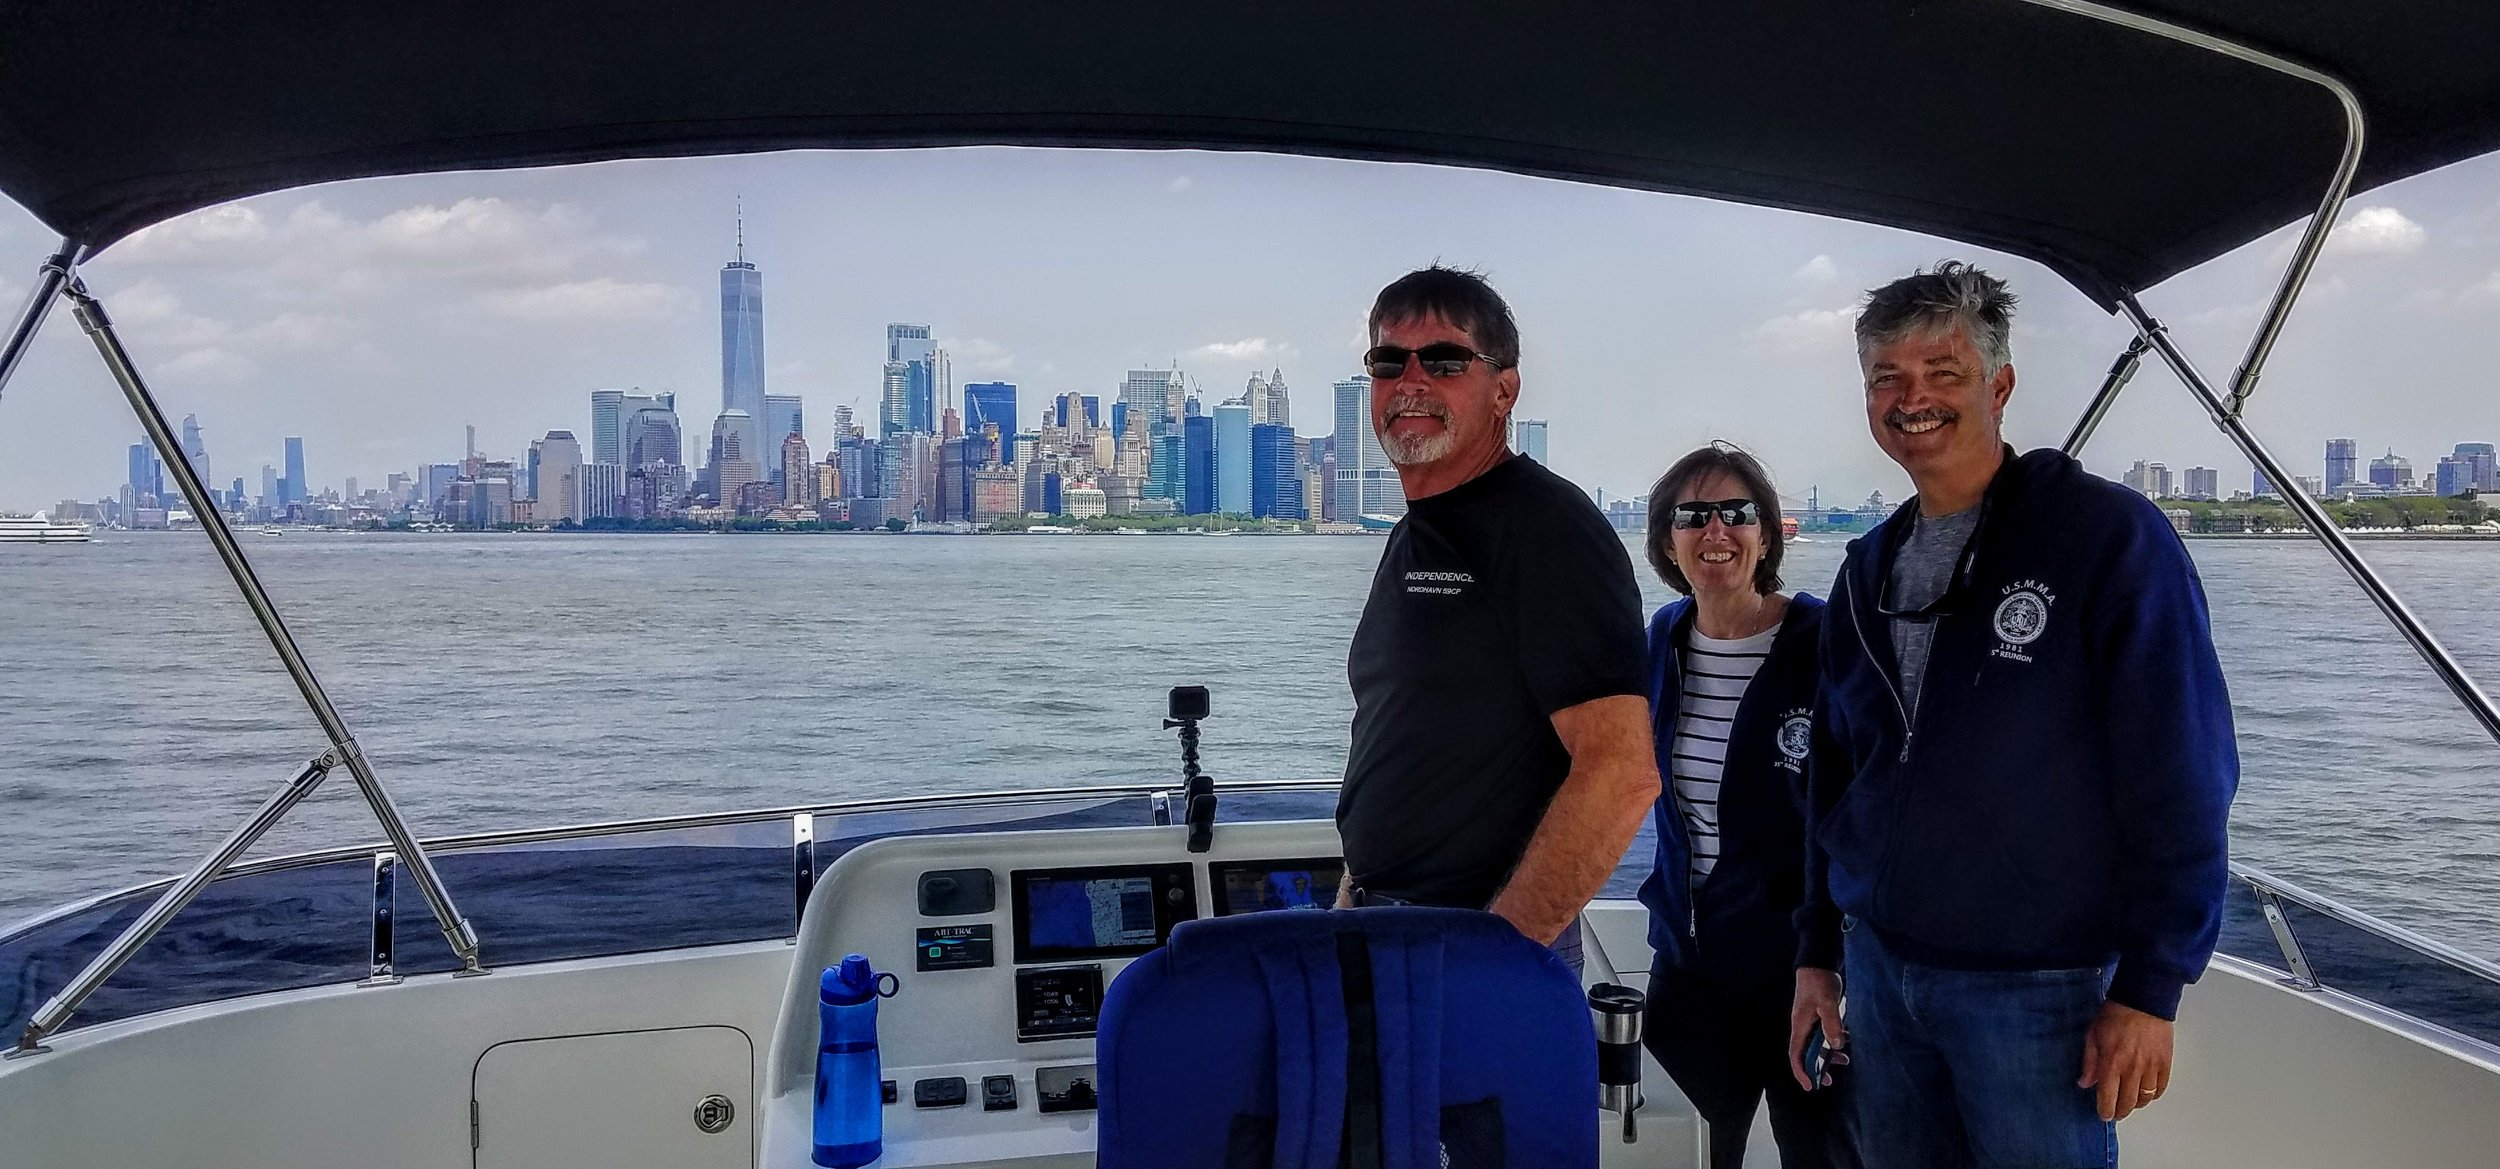 The crew approaching the Manhattan skyline and waterfront